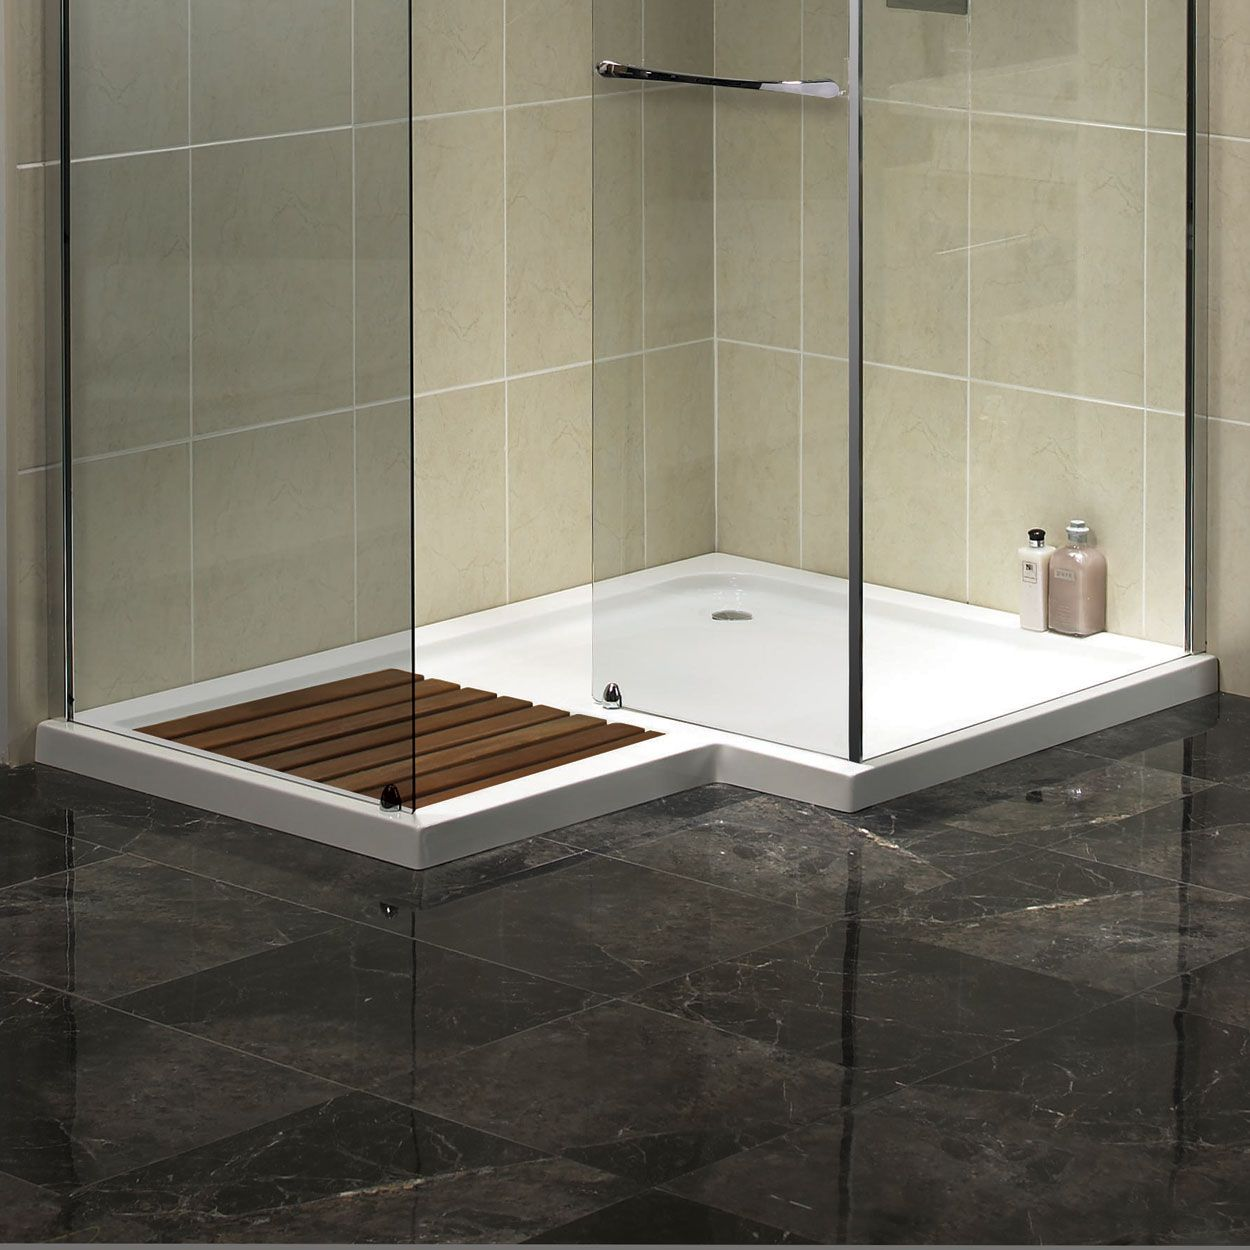 Aqualux AquaSpace Square Walk-In Shower Tray, 1500mm x 1000mm Wide ...